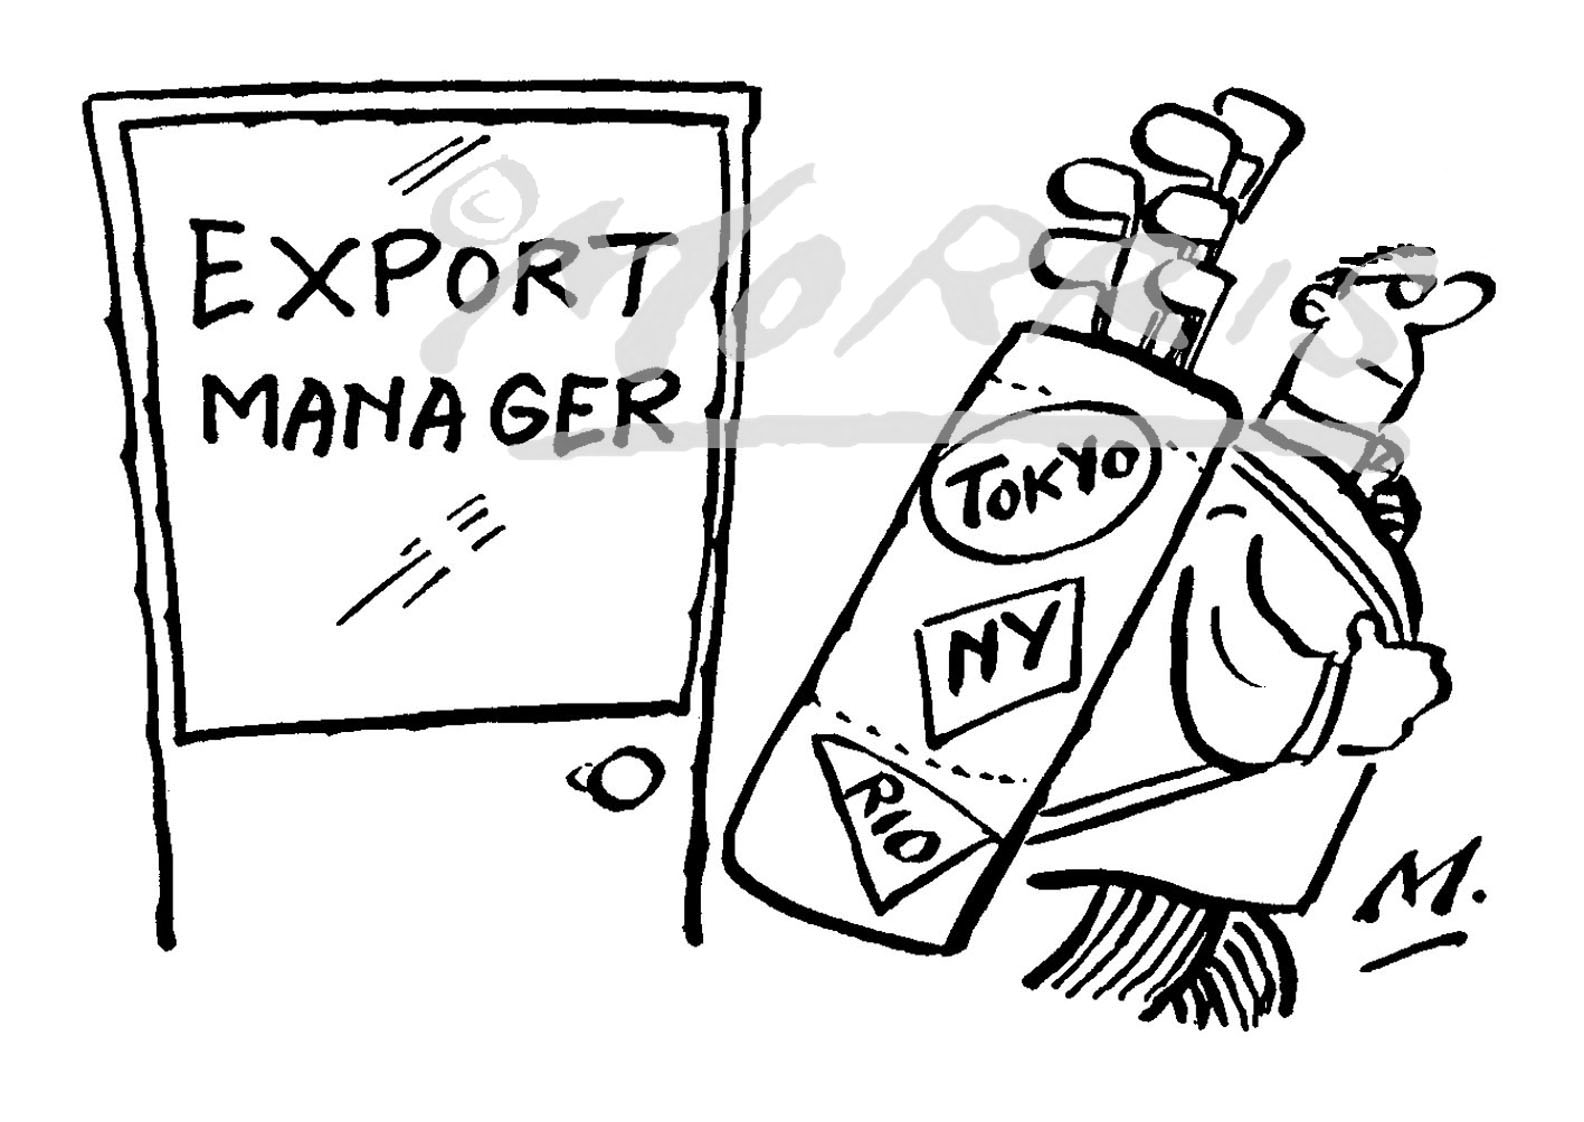 Export manager cartoon, golf cartoon Ref: 1562bw